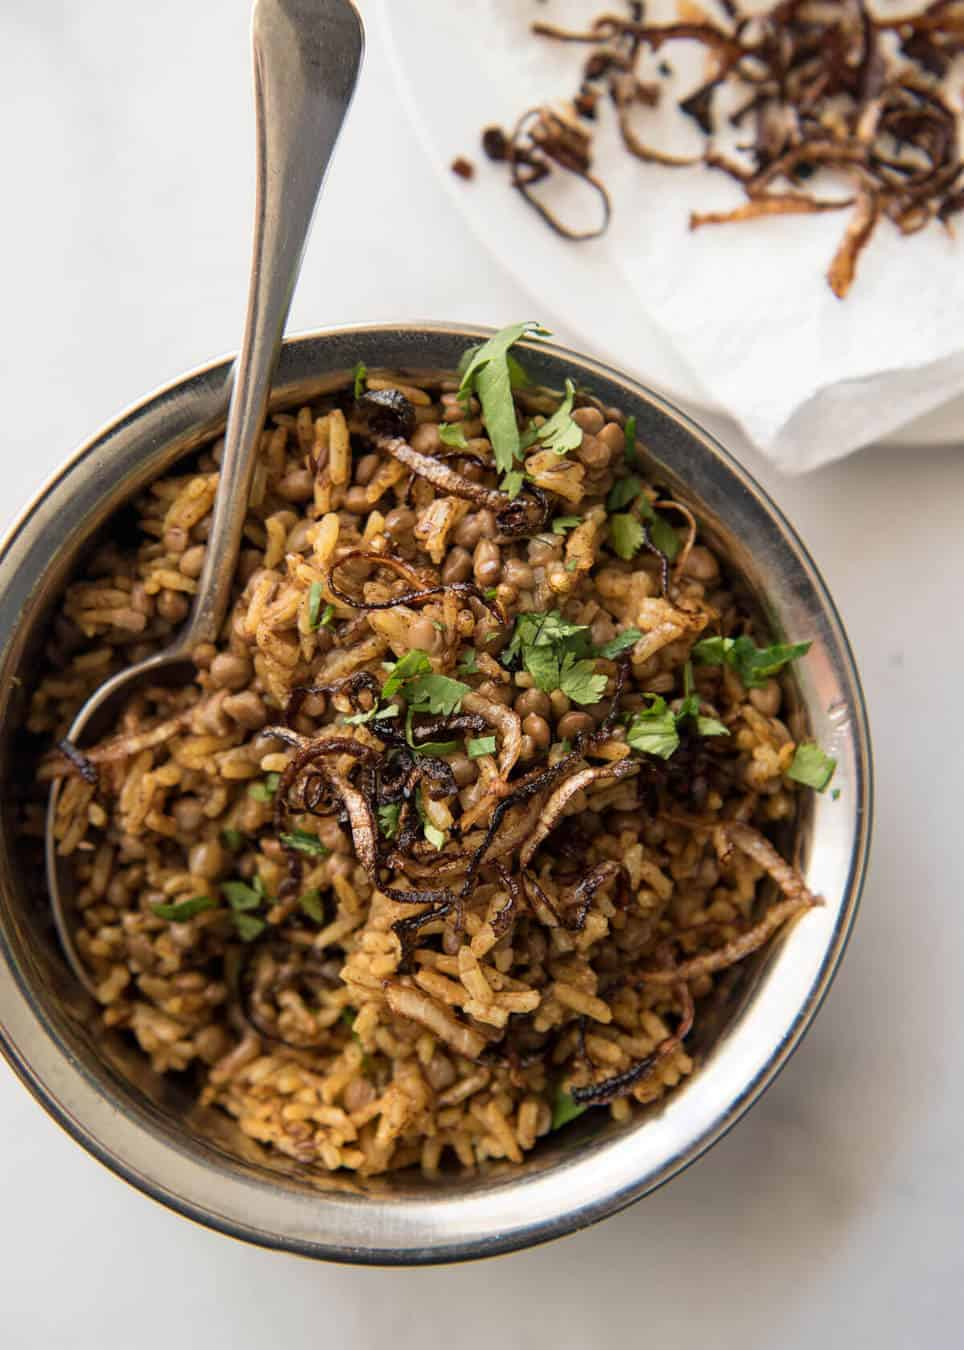 Mejadra - A aromatic Middle Eastern Rice and Lentil Pilaf. A recipe by Yotam Ottolenghi. recipetineats.com